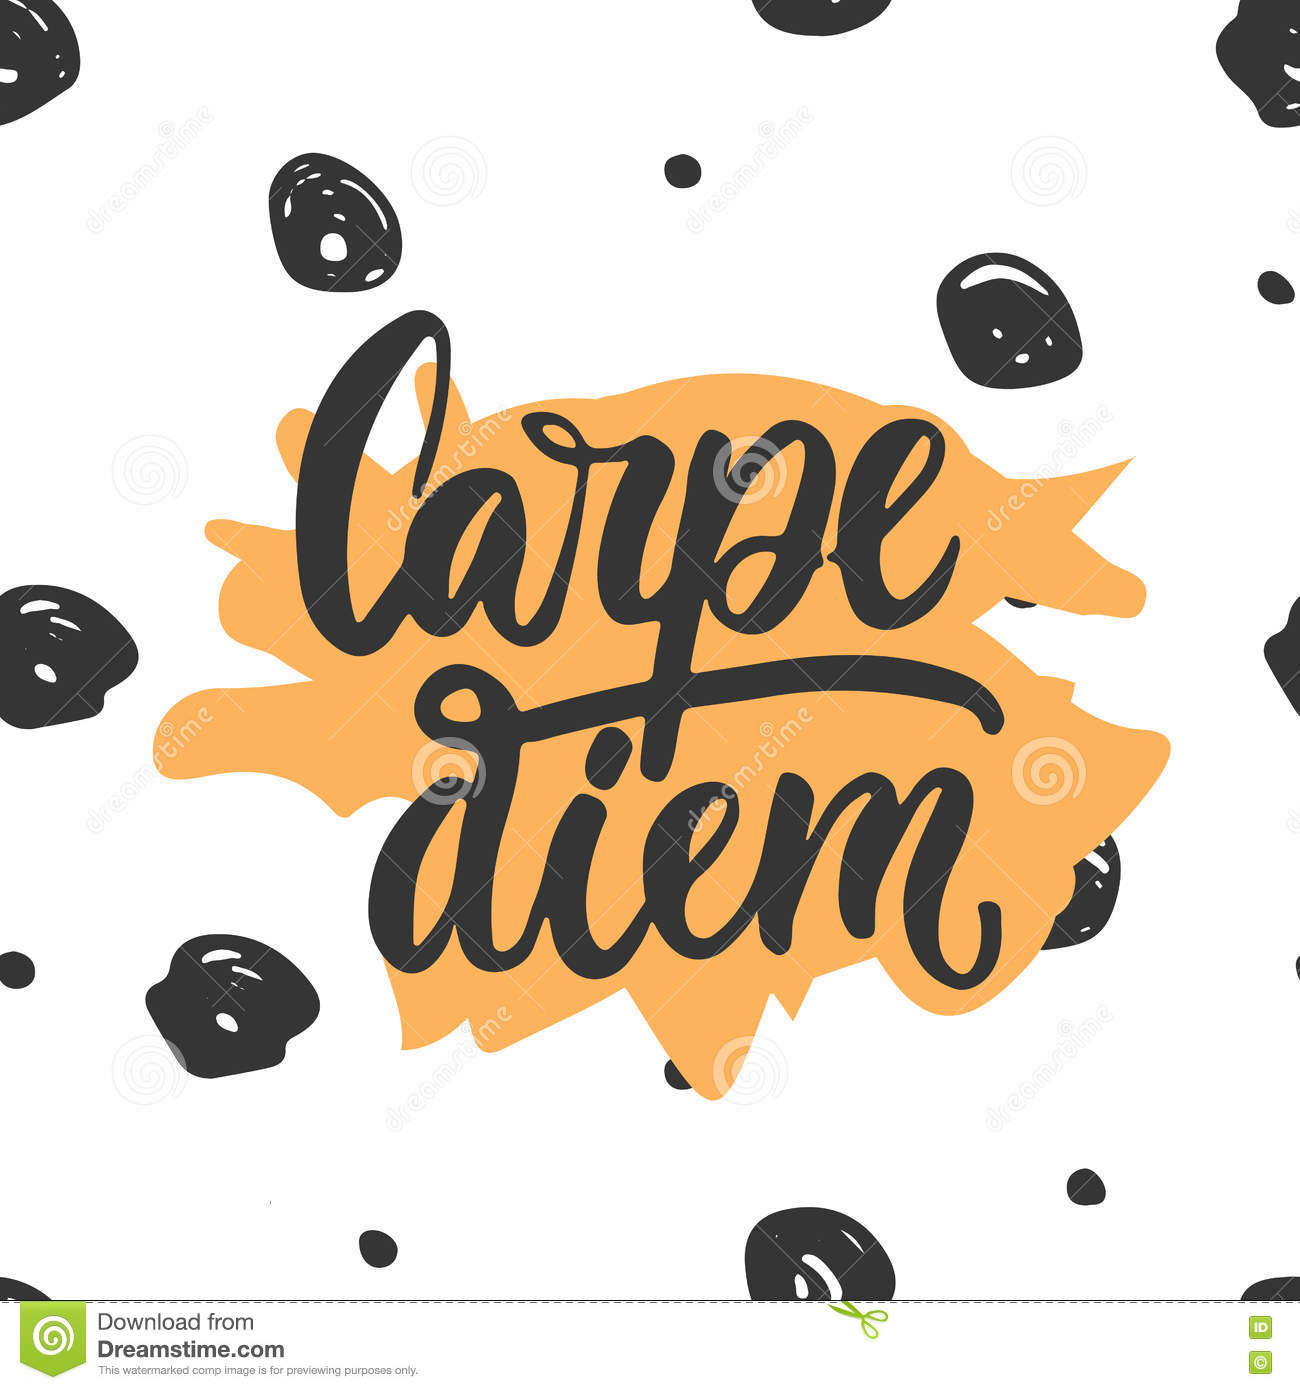 Carpe Diem Hand Drawn Lettering Phrase Means Seize The Day On The